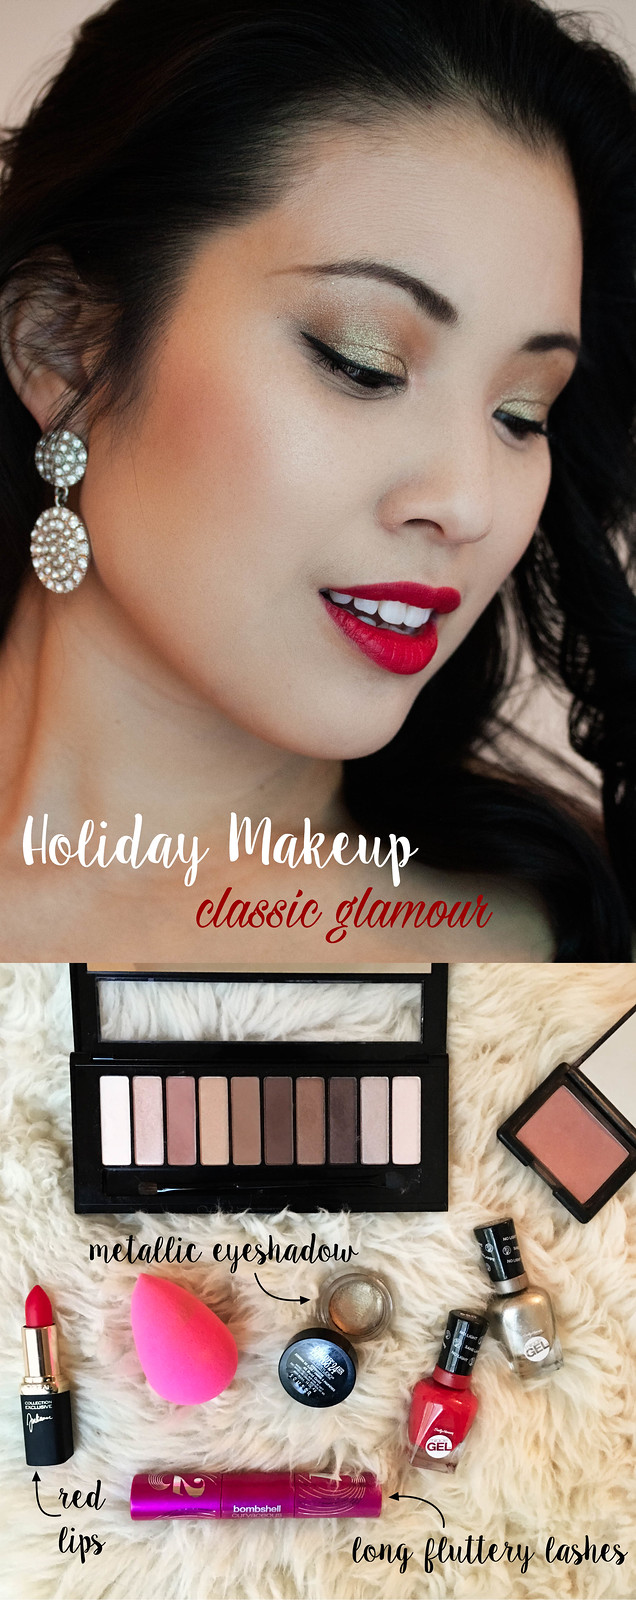 Holiday makeup tutorial: classic glamour makeup